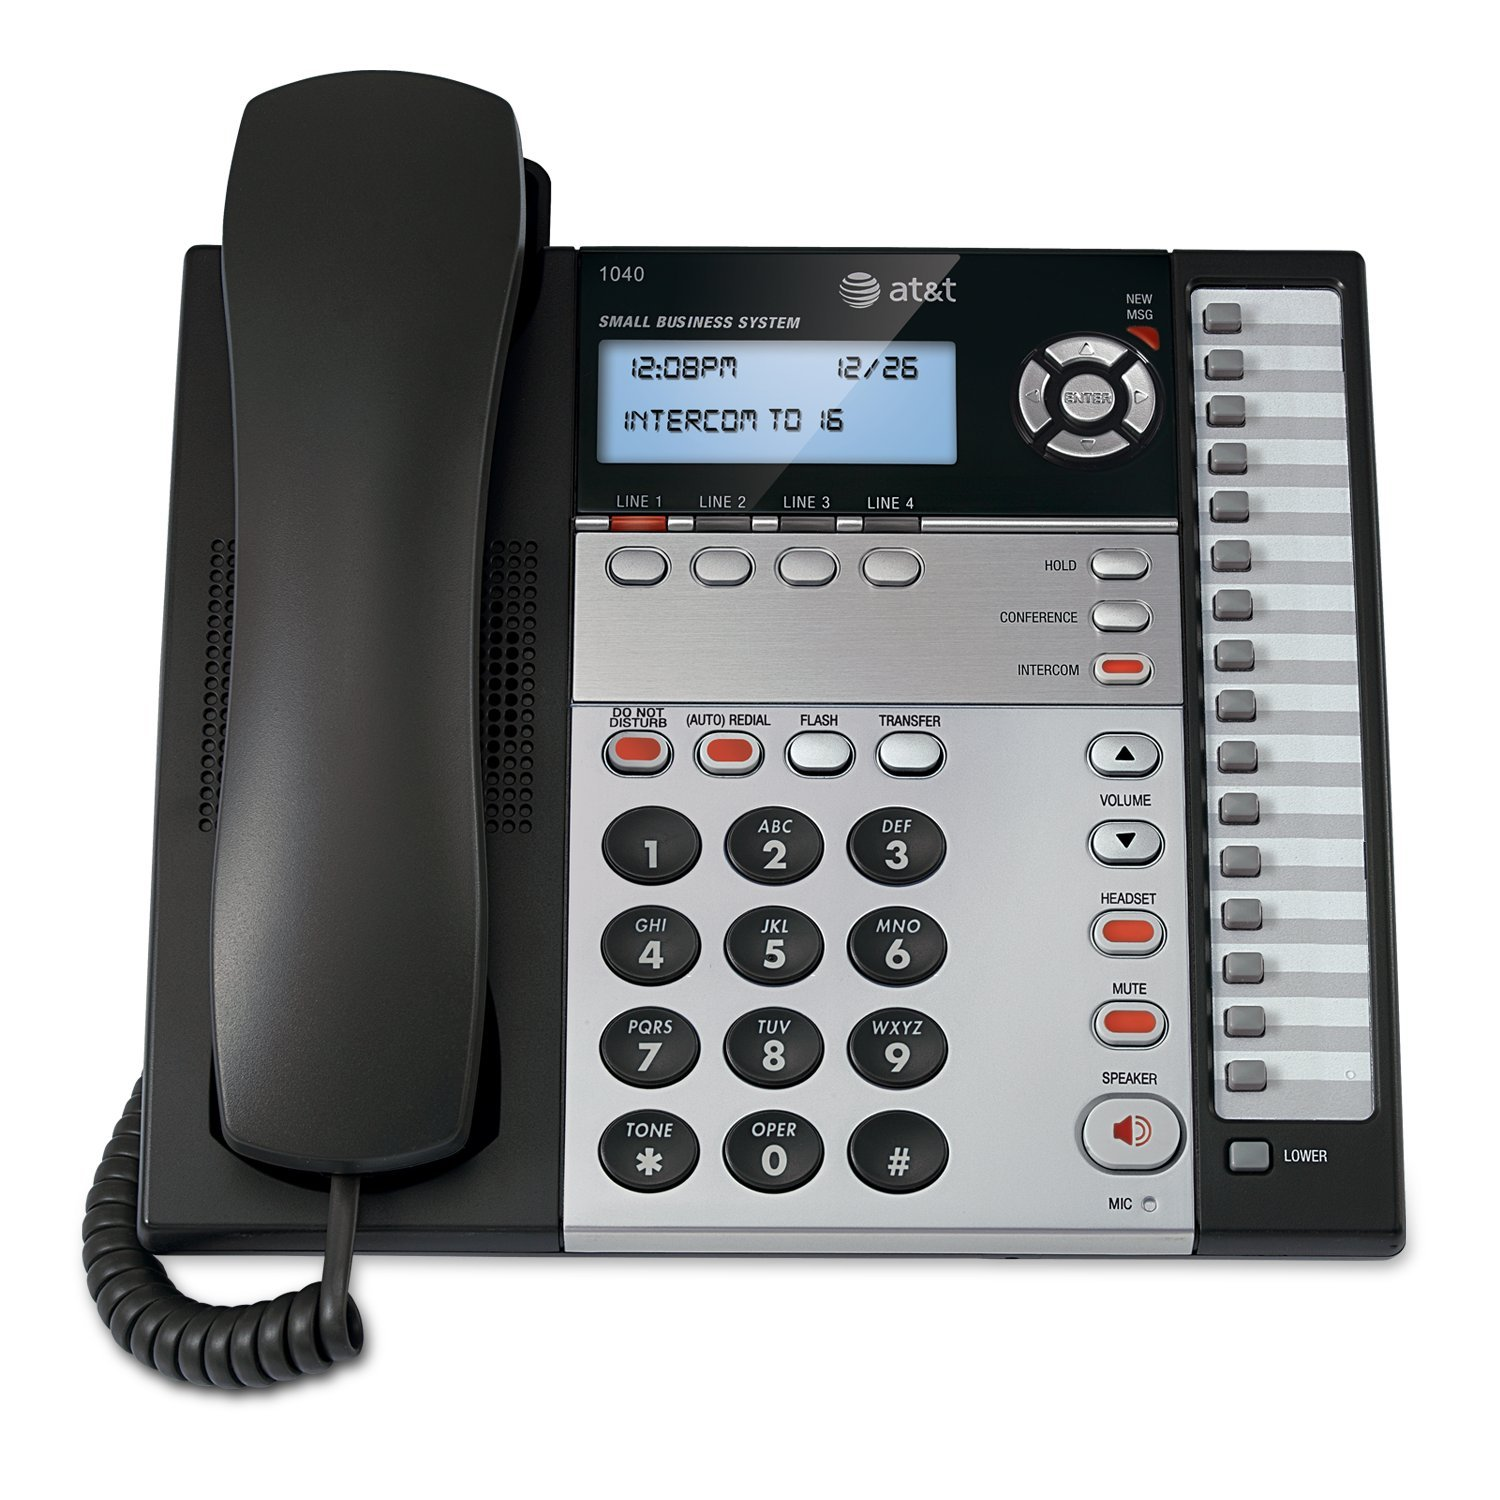 AT&T 1040 4-Line Speakerphone